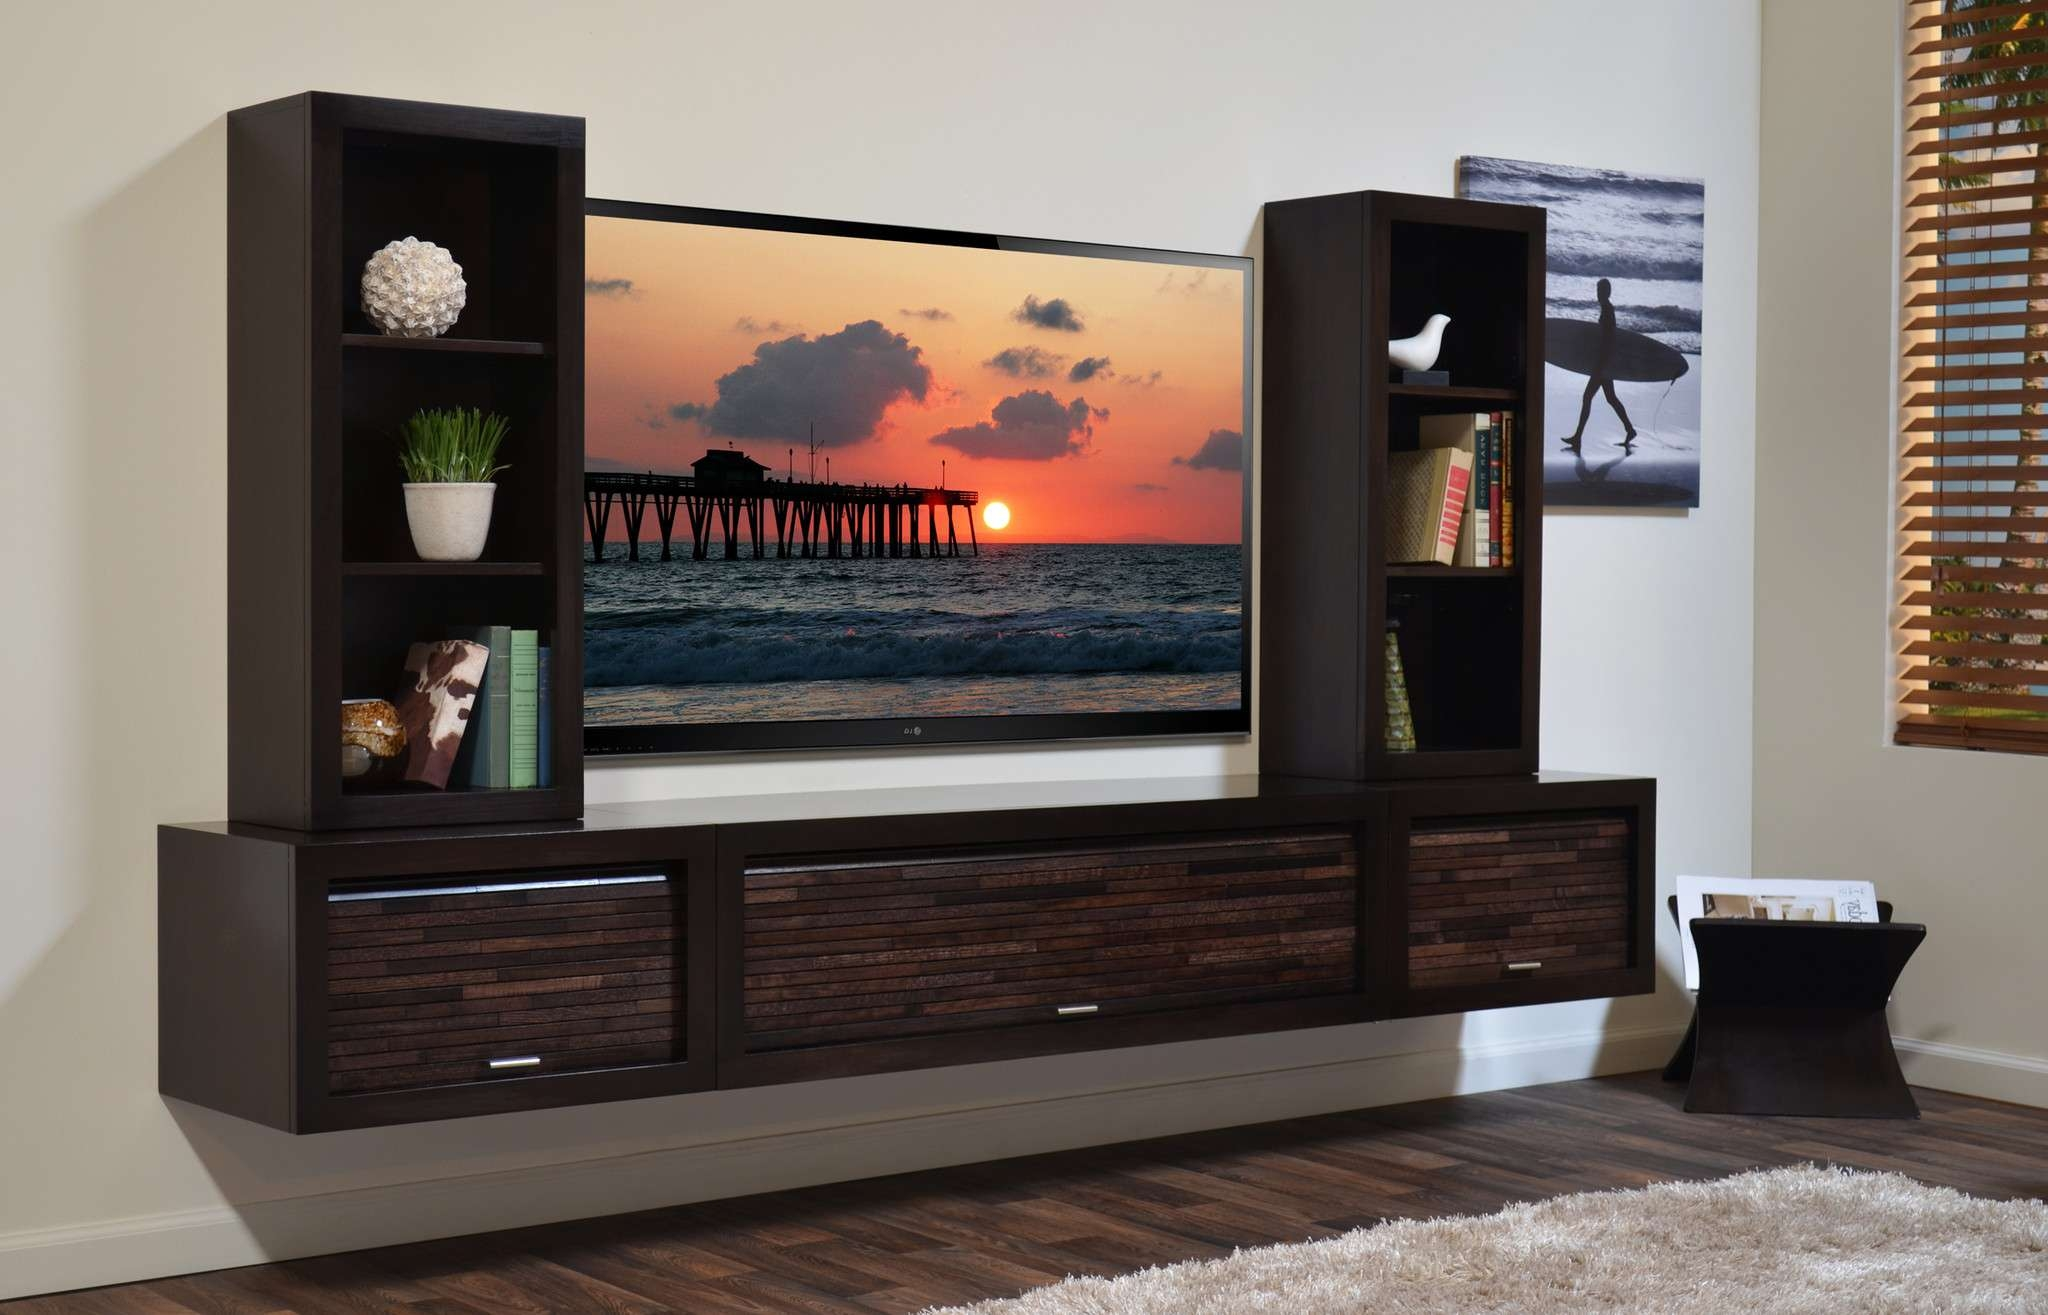 Bright And Modern Wall Entertainment Shelf Nice Ideas Floating Intended For Entertainment Center Tv Stands (View 13 of 15)